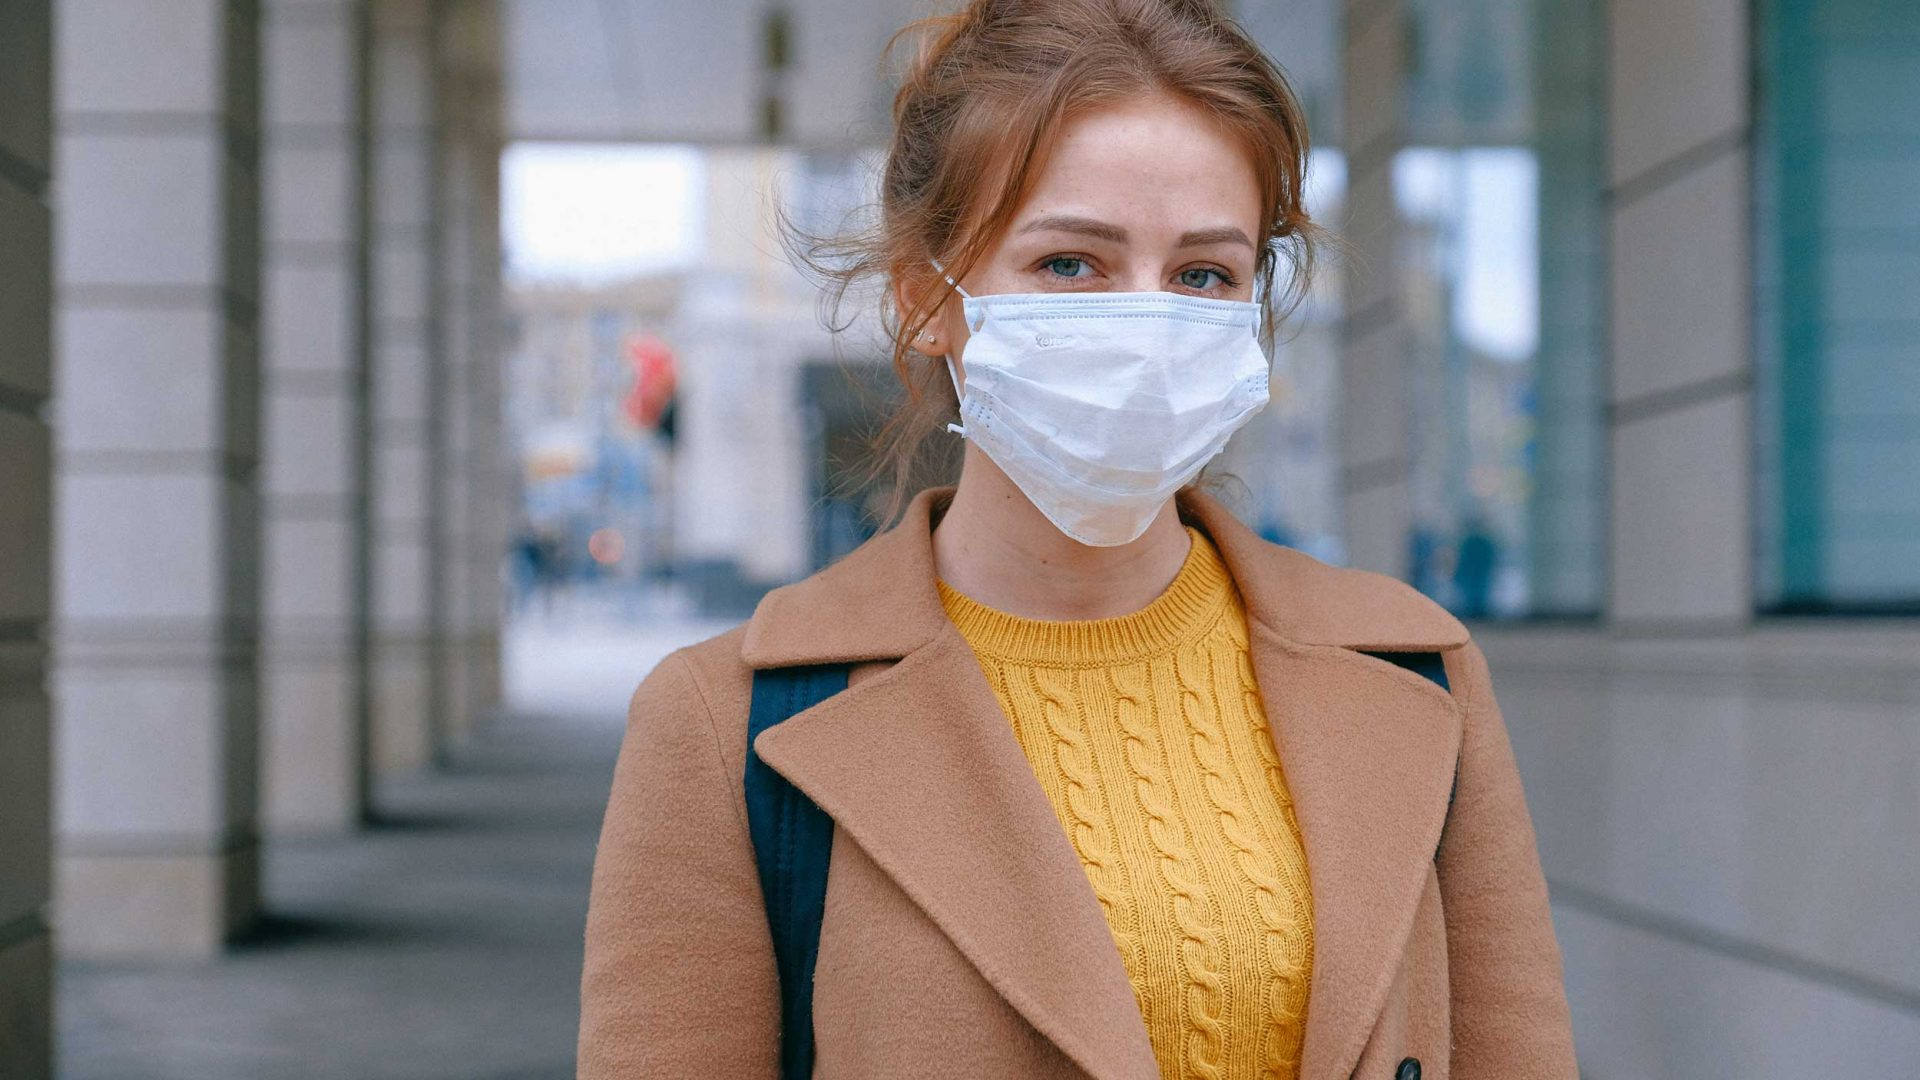 woman-wearing-face-mask-cover-image